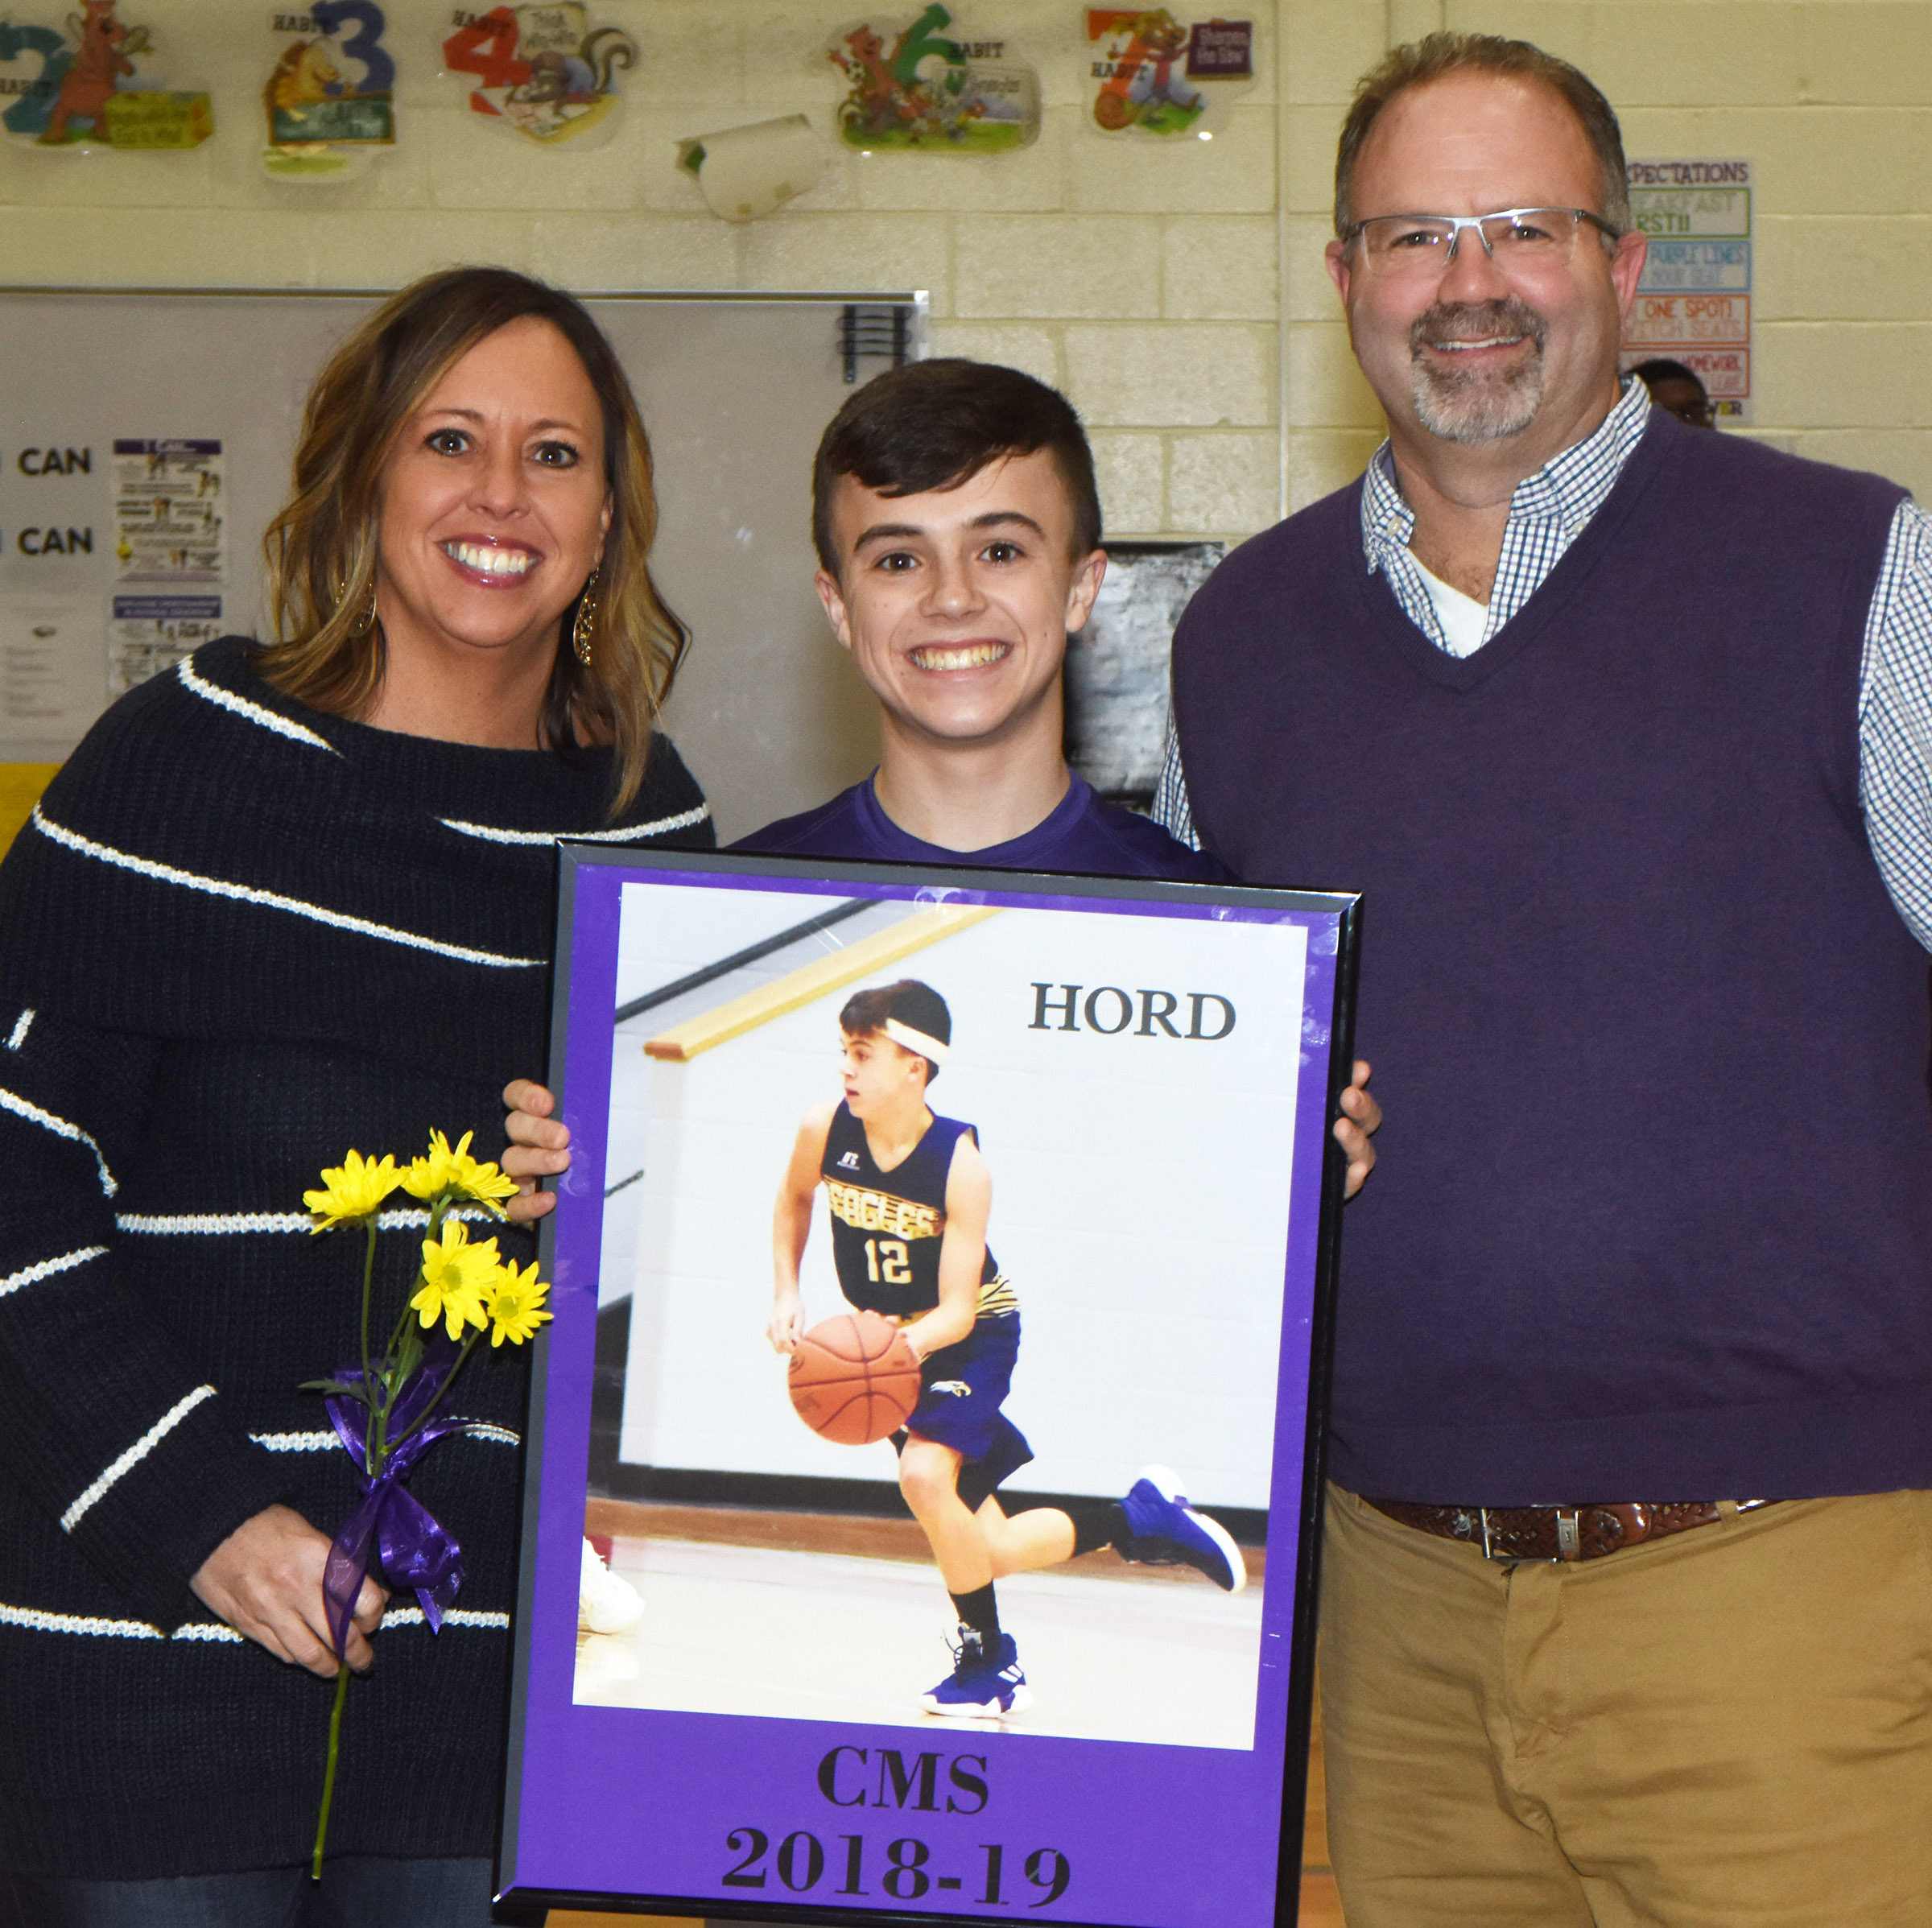 CMS boys' basketball eighth-grader player Chase Hord is honored.